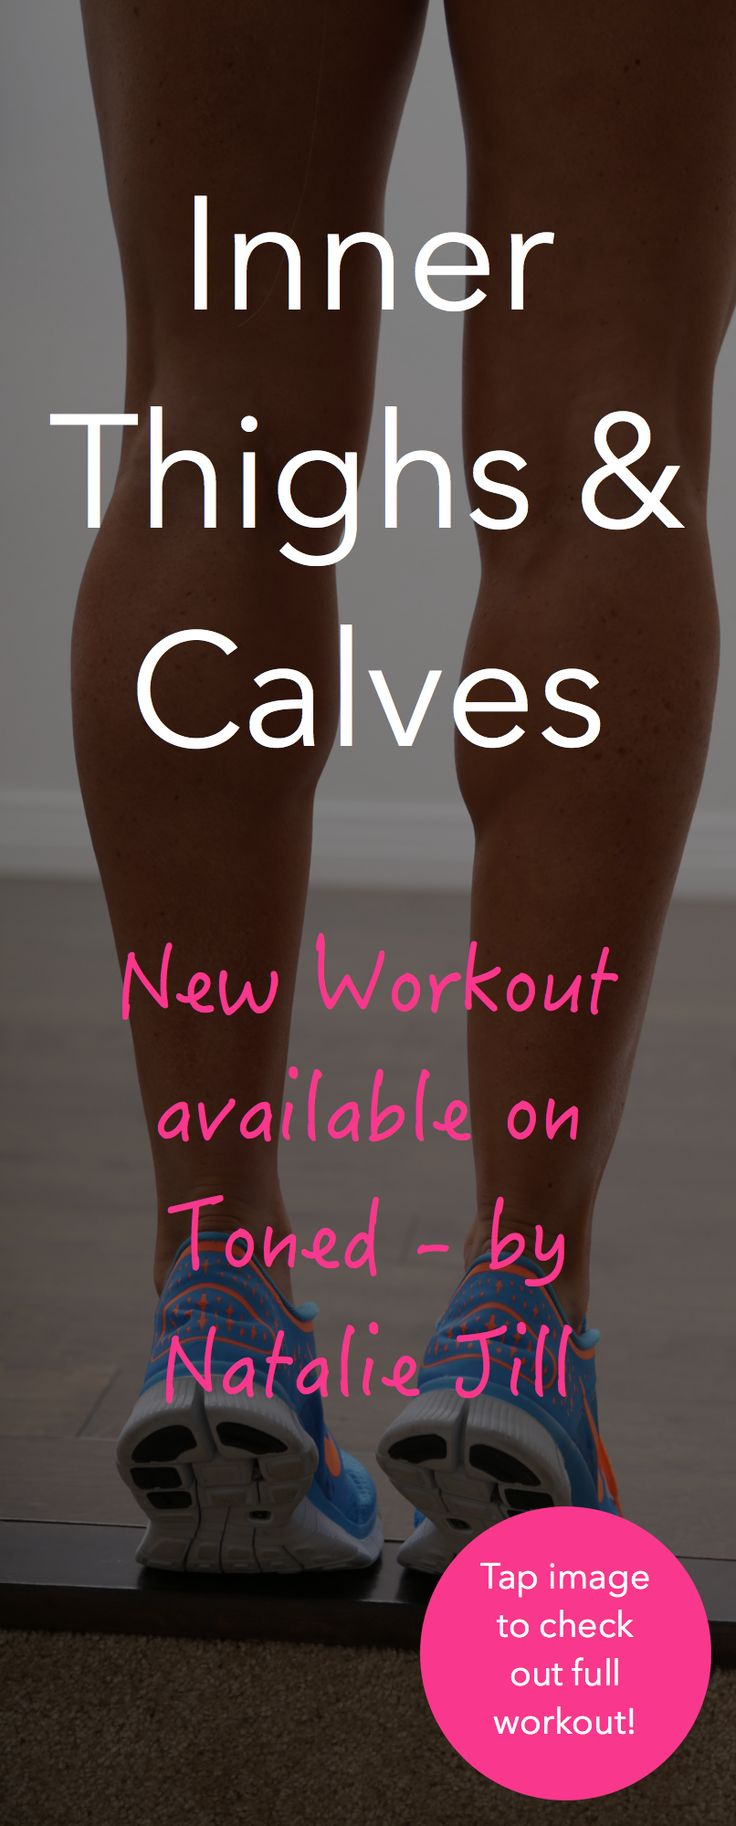 """New Inner thigh & calves workout is up on my """"TONED by Natalie Jill App!"""" Download my app to get in on the action :)   NEW workout added every week!"""